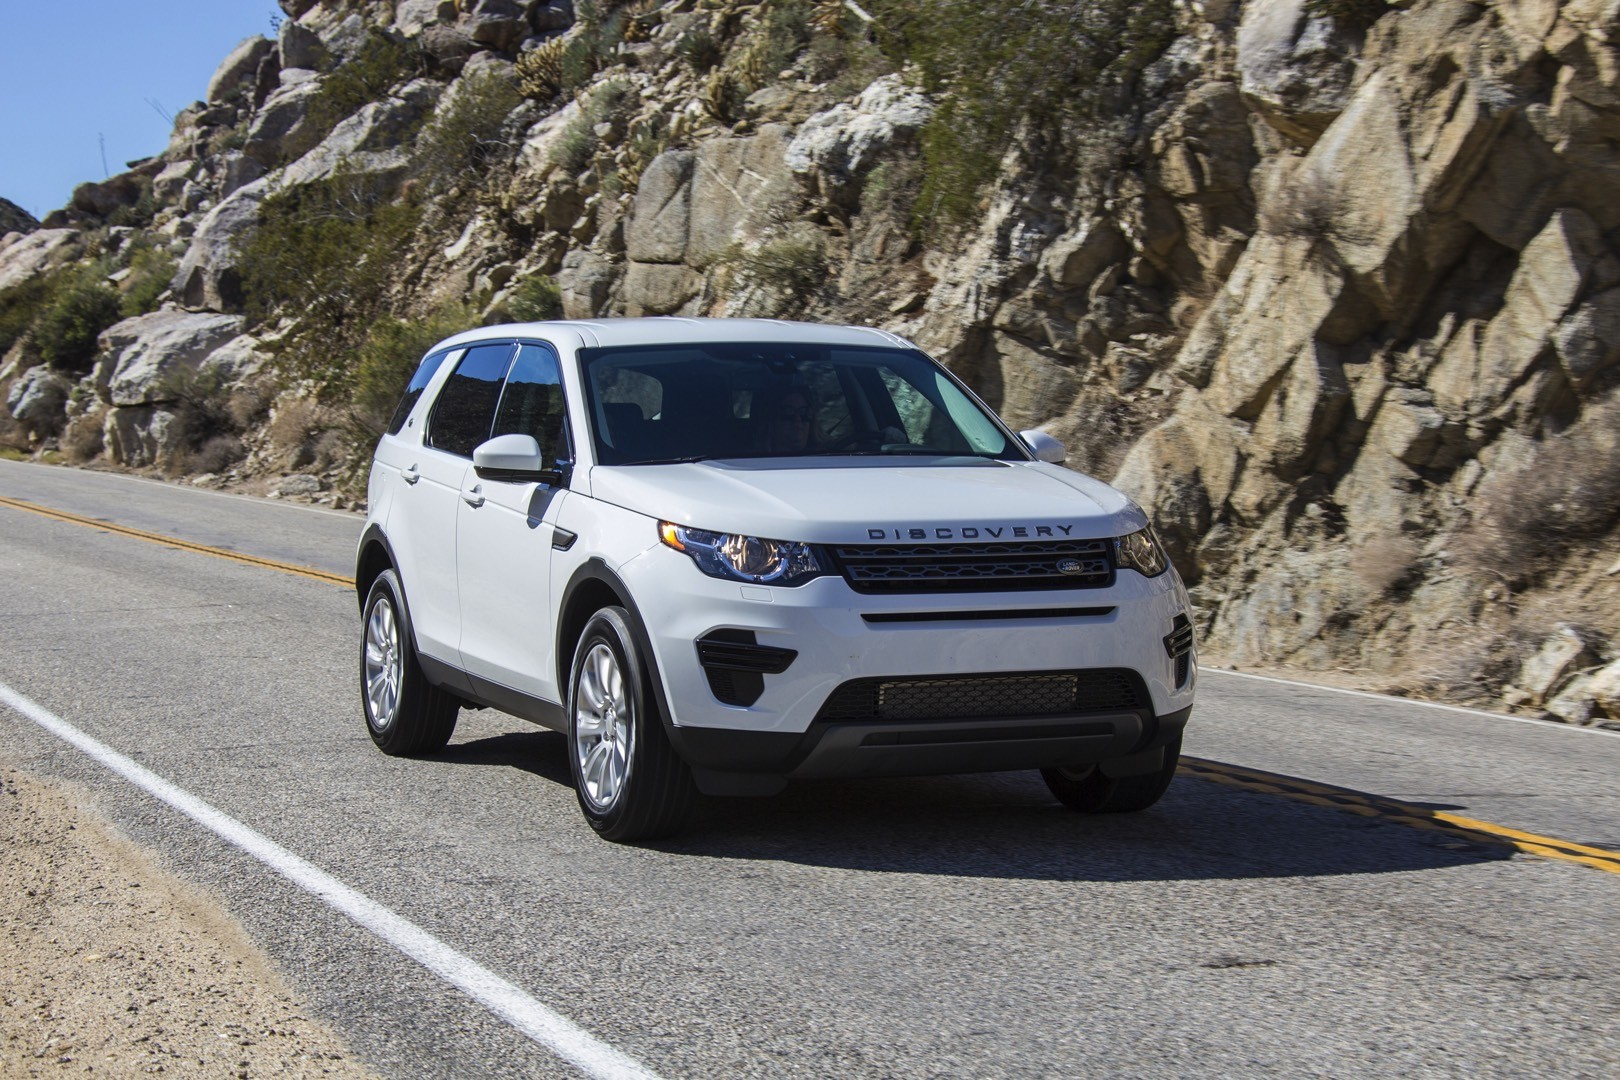 land rover s discovery sport launch edition gets prices starting at 48 975 autoevolution. Black Bedroom Furniture Sets. Home Design Ideas